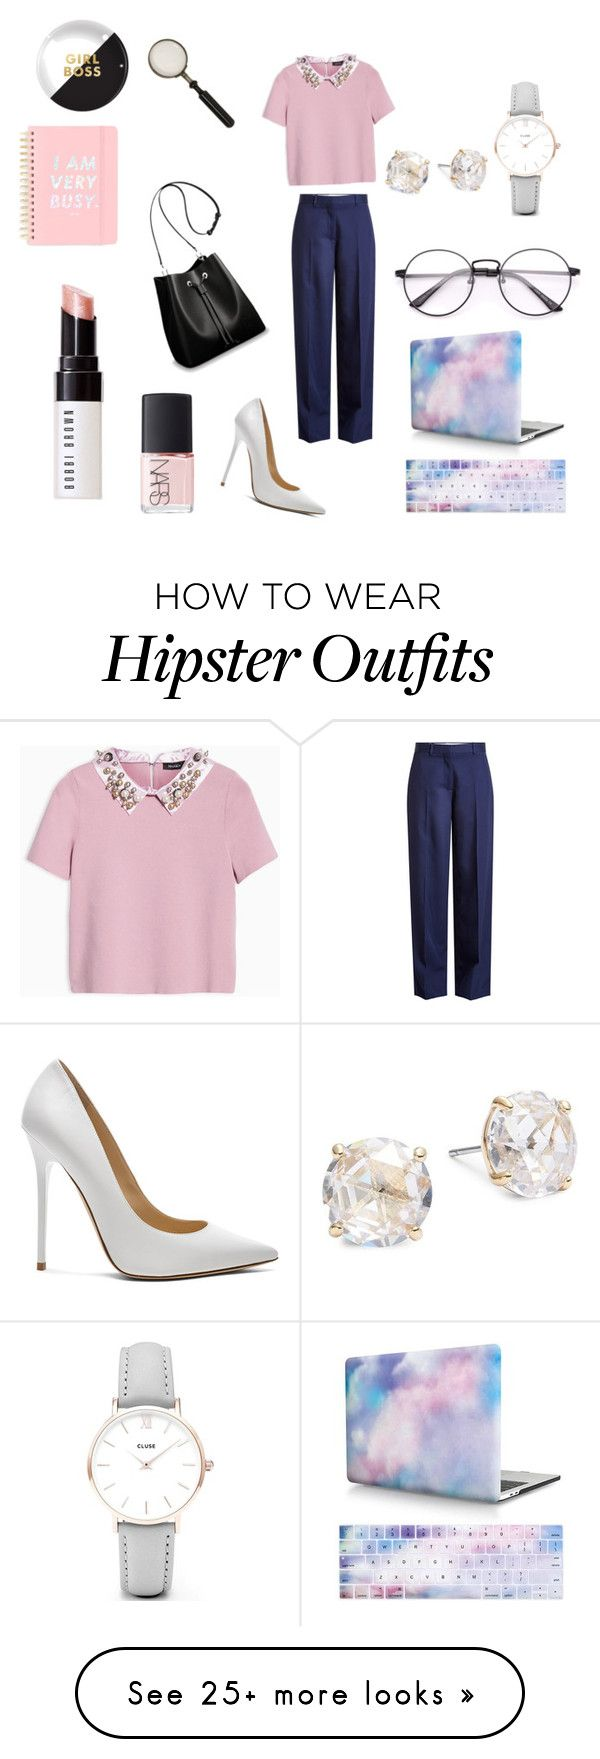 """""""Office chic look"""" by miloni-jhaveri on Polyvore featuring Max&Co., Victoria Beckham, Jimmy Choo, Louis Vuitton, CLUSE, Kate Spade, Bobbi Brown Cosmetics, NARS Cosmetics, ban.do and Fringe"""